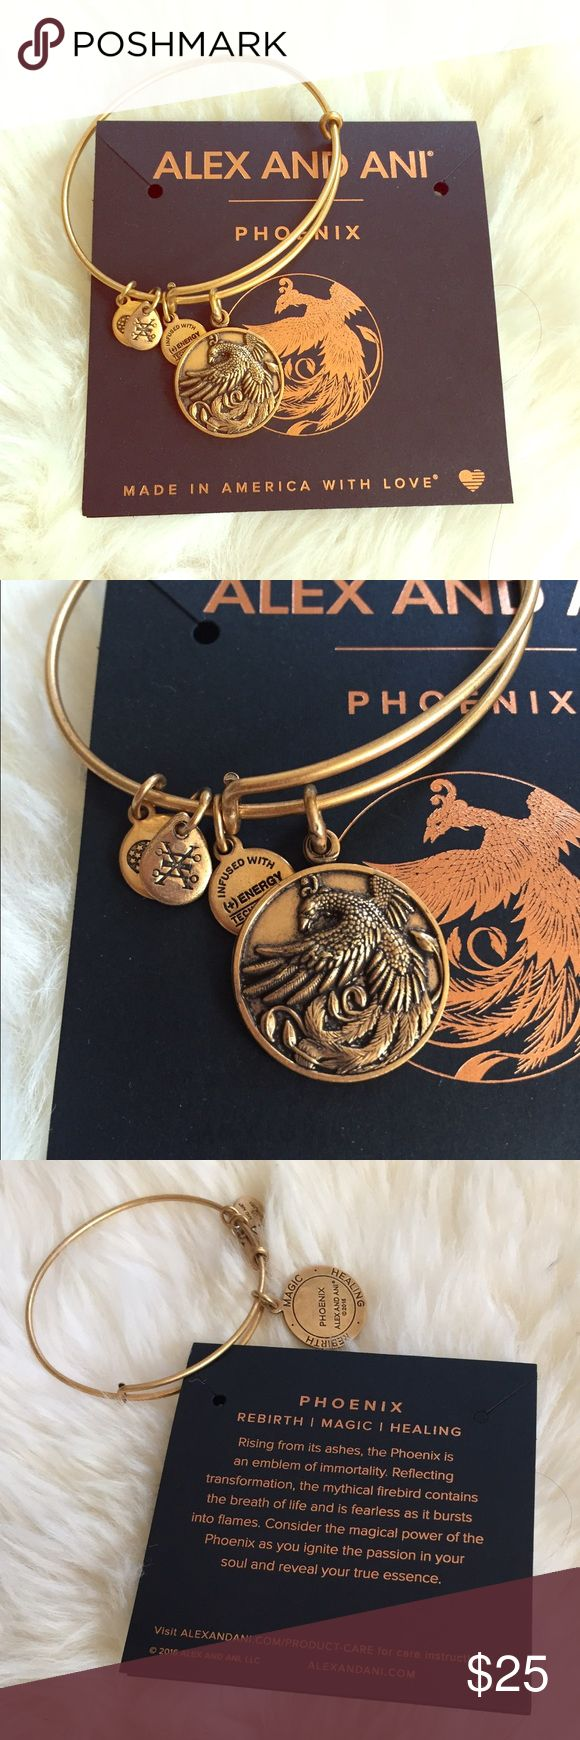 Alex and Ani Phoenix bracelet BRAND NEW Authentic Alex and Ani Phoenix bracelet. Brand new, never tried on. Authentic. Comes with card. I have 2 of these, only one has retail tag-both brand new Alex & Ani Jewelry Bracelets